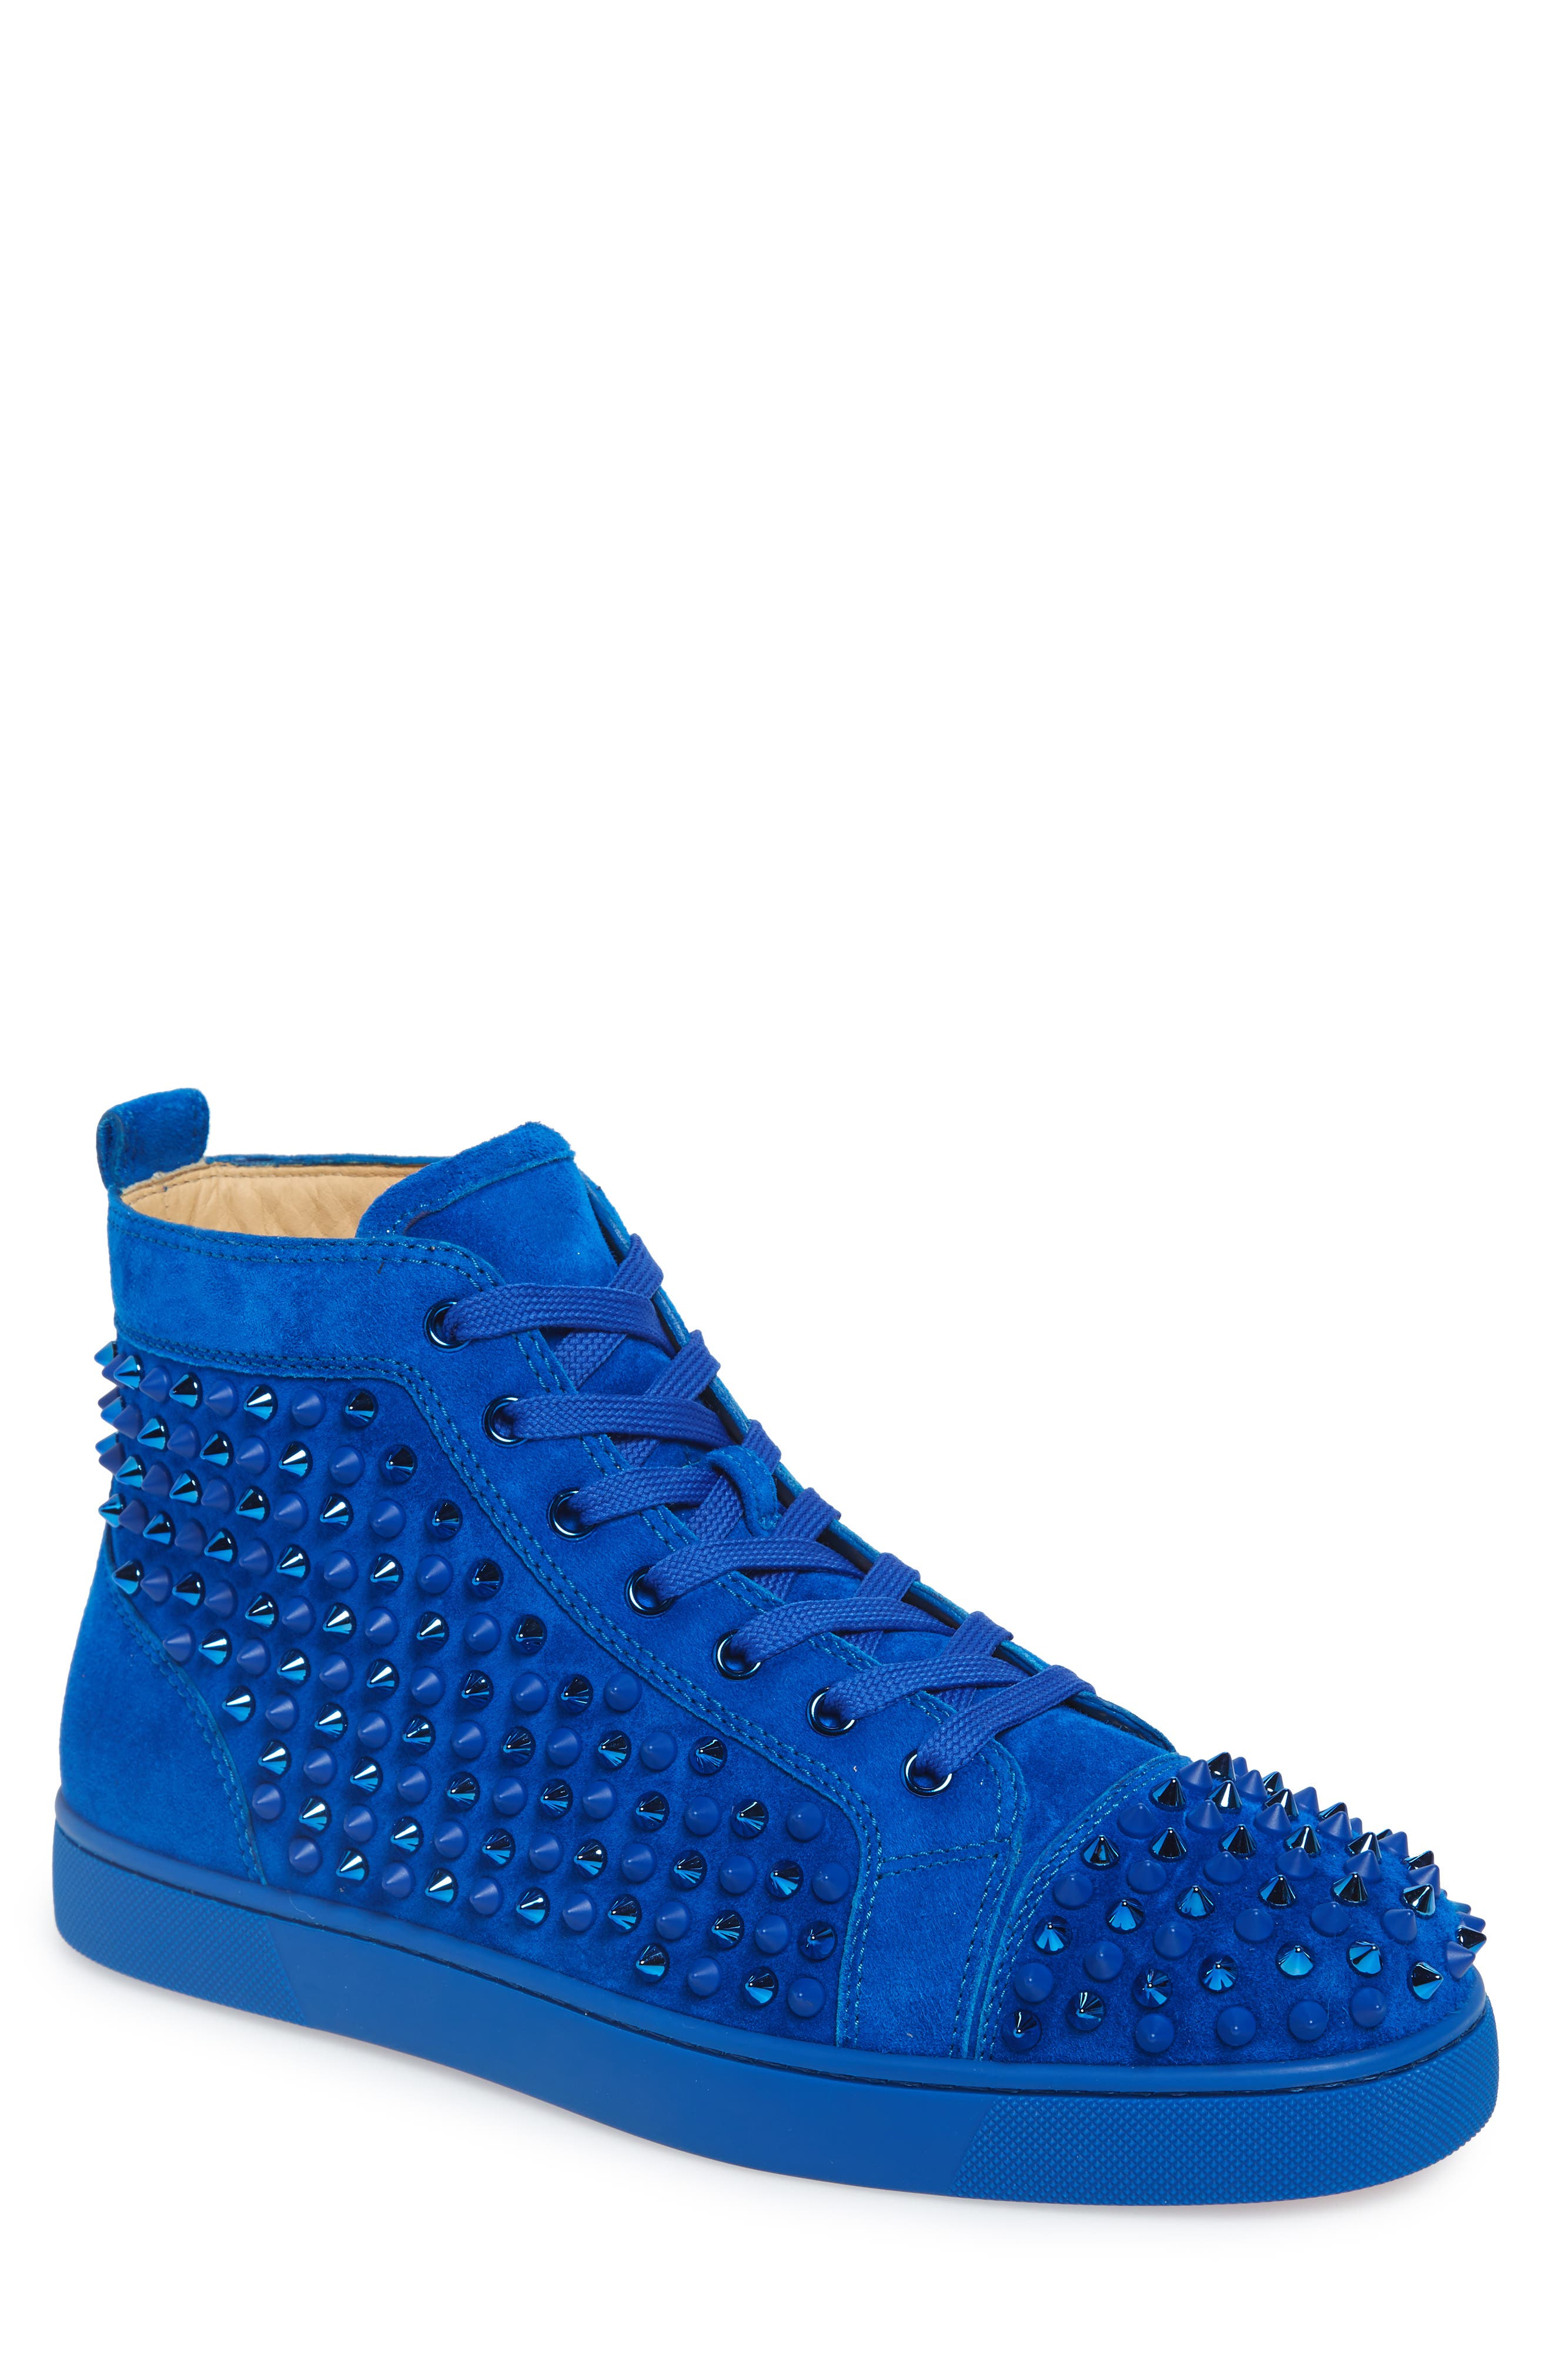 Louis Spikes High Top Sneaker, Main, color, CYCLE/CYCLE MIX